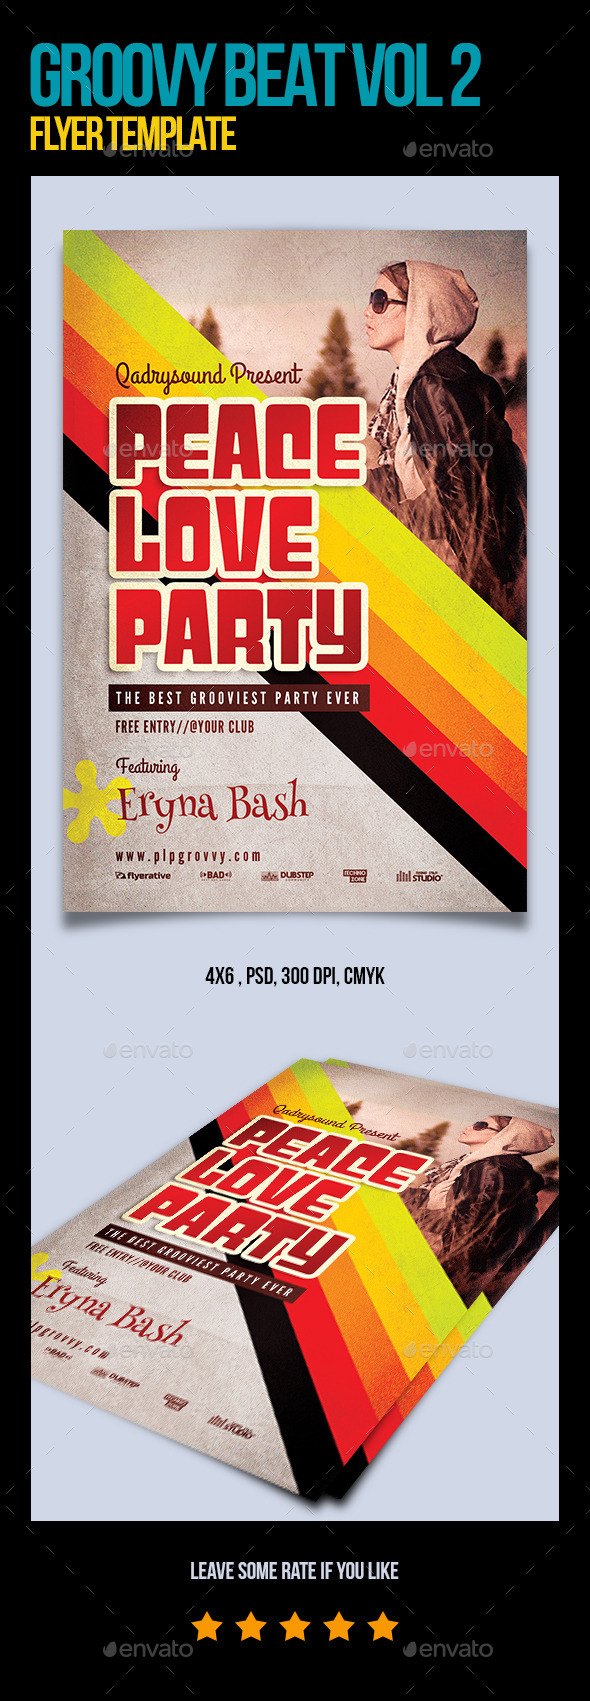 Groovy Beat Vol 3 Flyer Template - Clubs & Parties Events